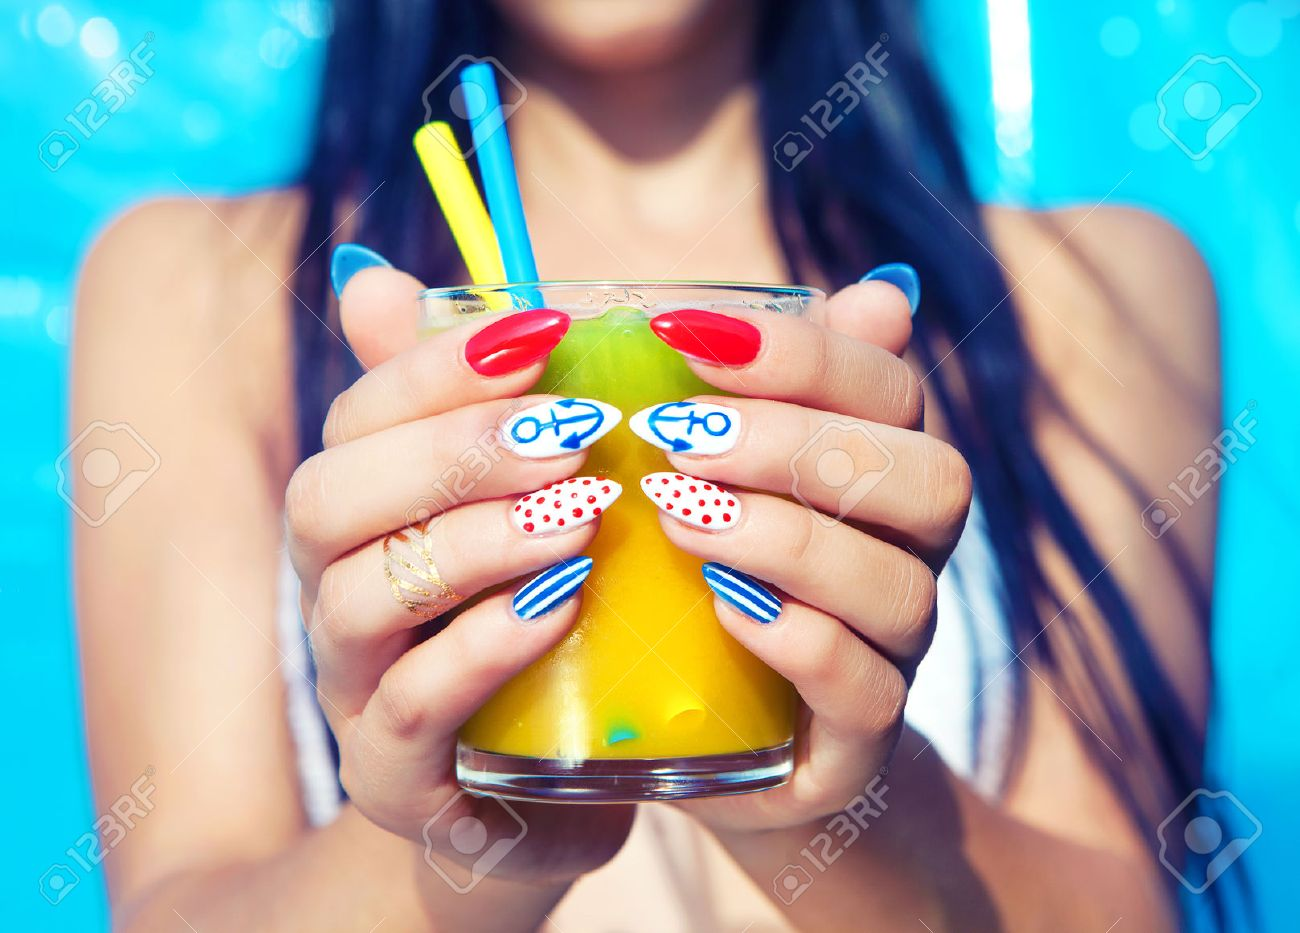 Nail art images stock pictures royalty free nail art photos and young woman with marine sailor manicure holding glass of orange juice summer nail art beauty prinsesfo Gallery